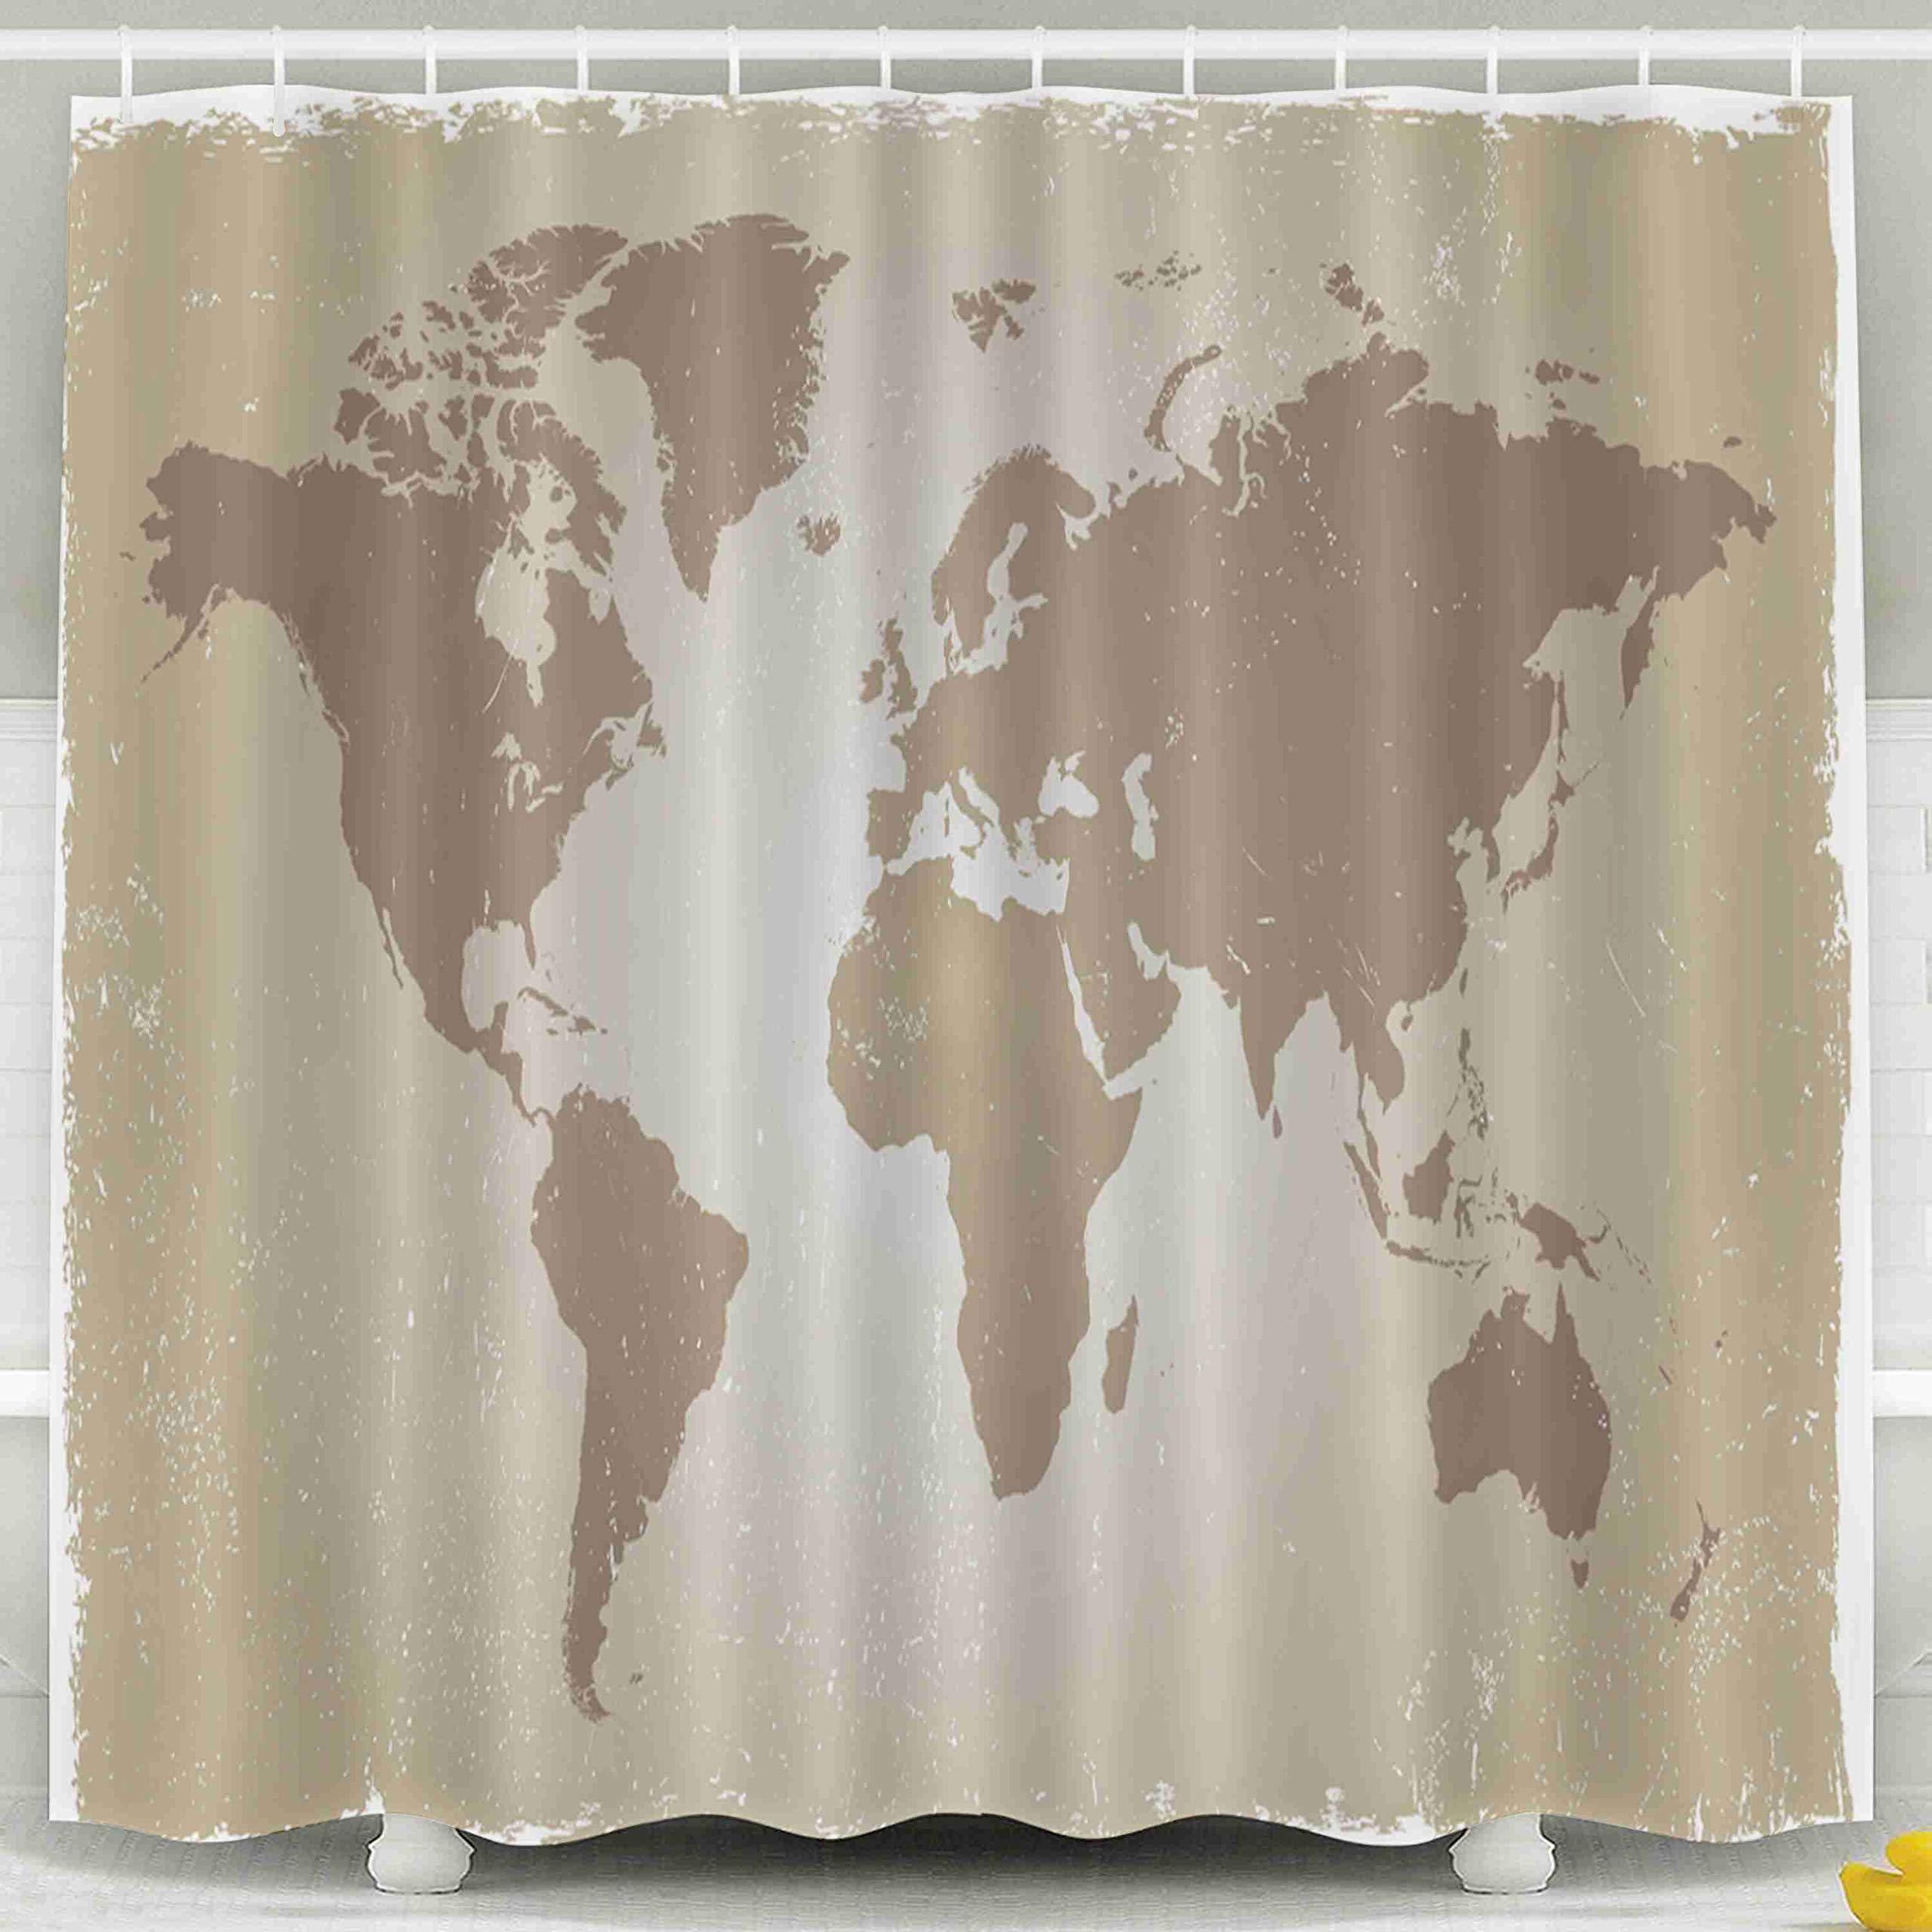 Jacrane Waterproof Fabric Bathroom Clear Shower Curtains Liner with Hooks Grunge World Map 72X72Inch,Yellow Green